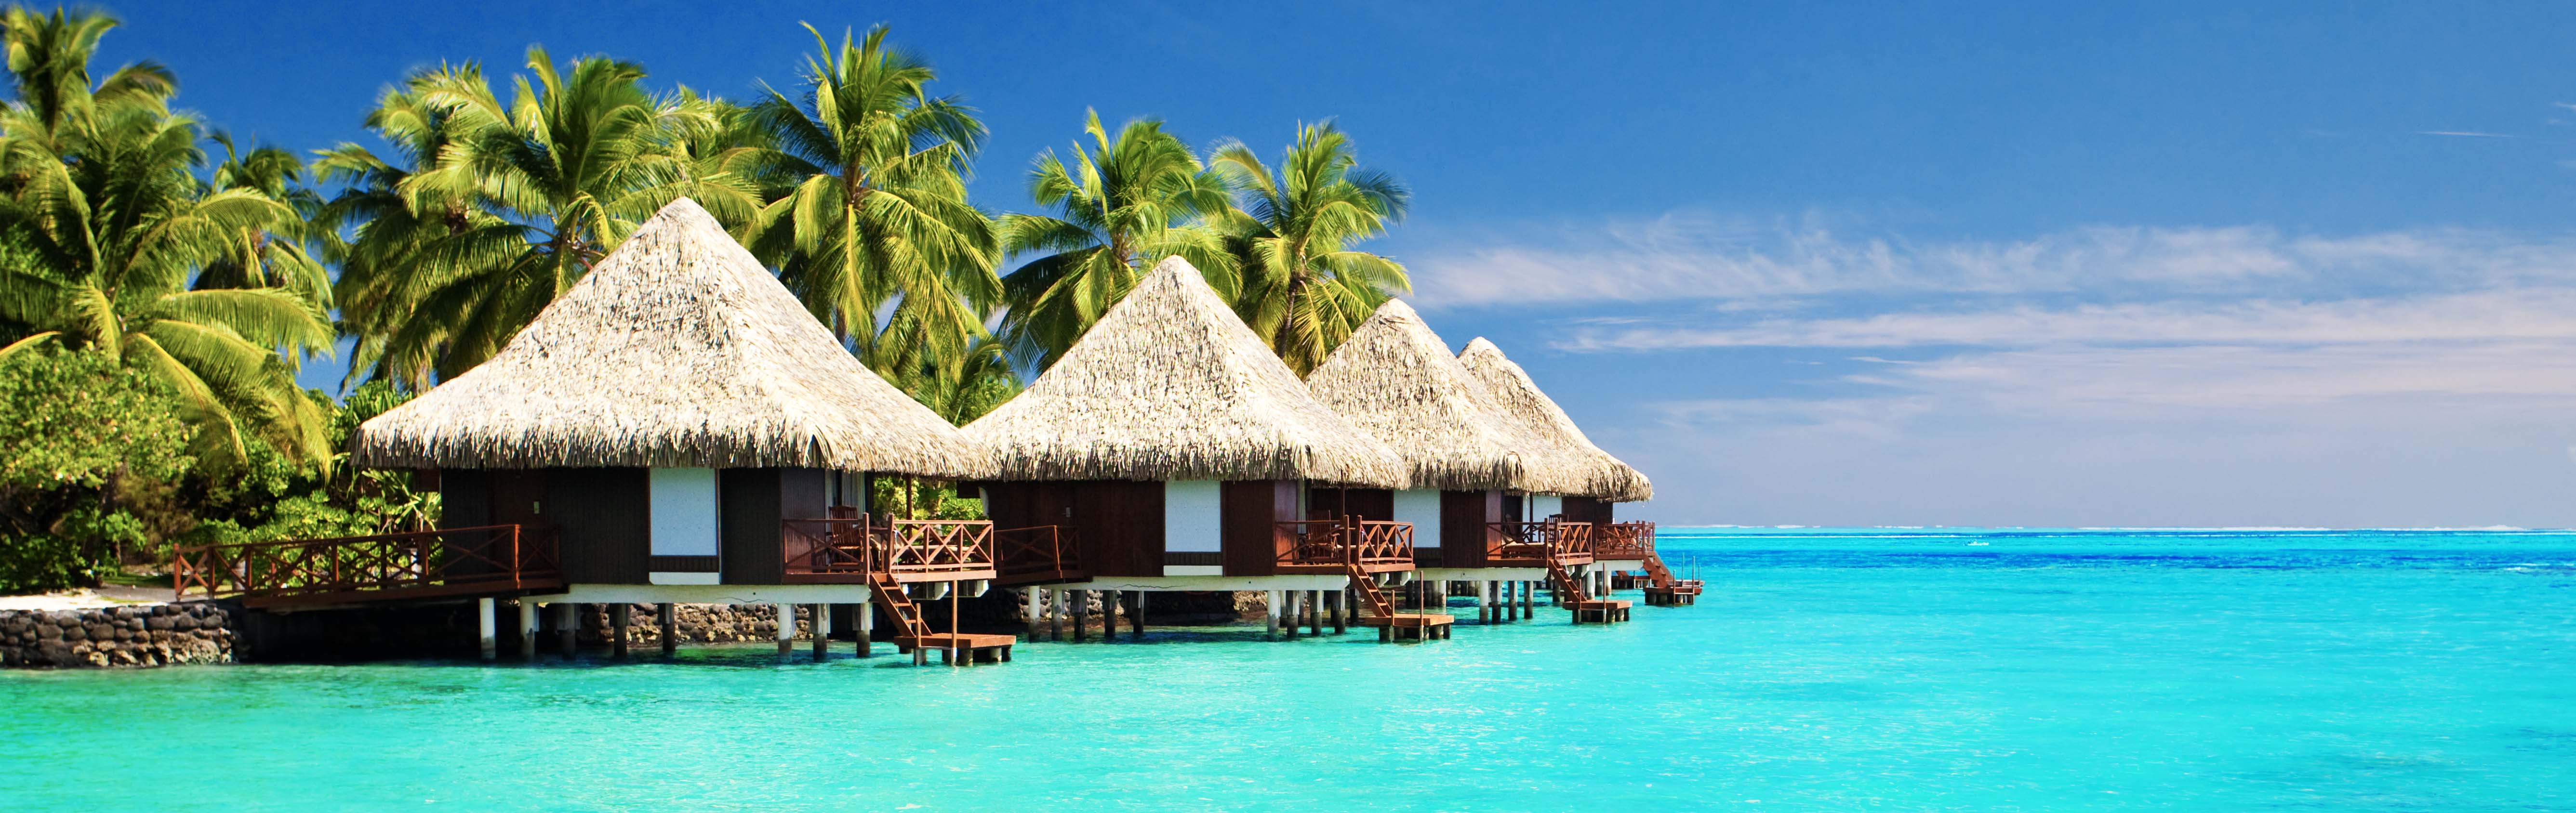 9 Overwater Bungalows Closer Than The